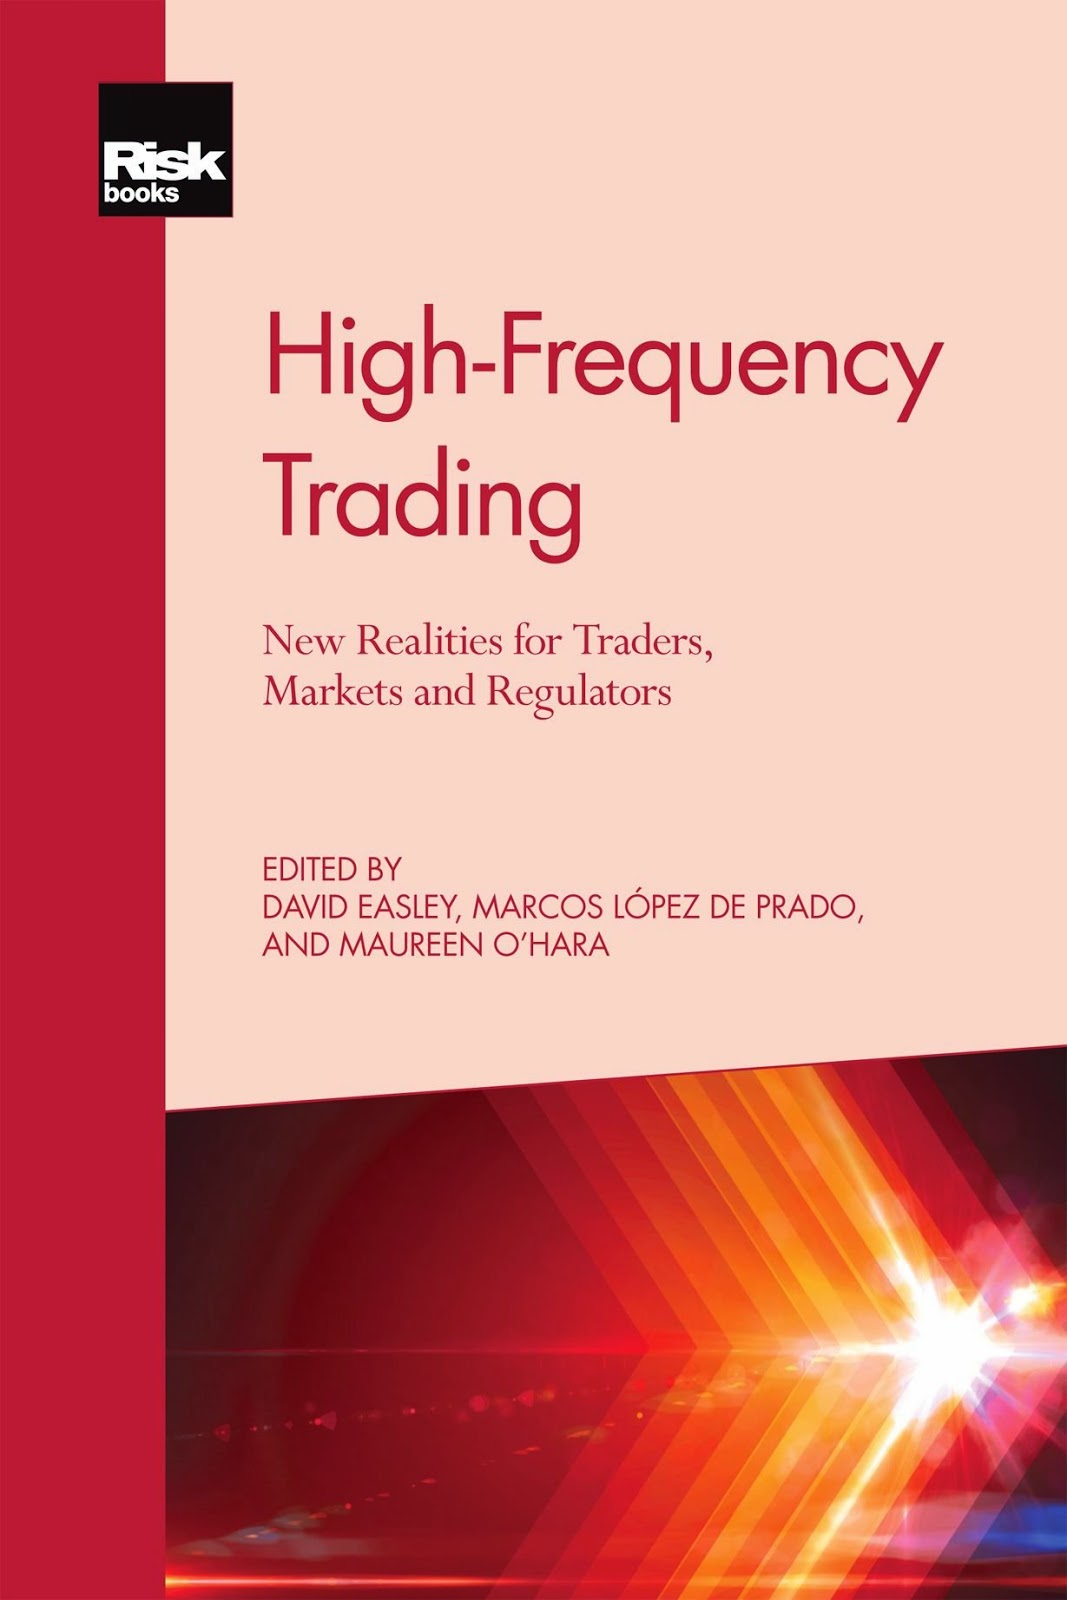 http://www.kingcheapebooks.com/2014/10/high-frequency-trading.html